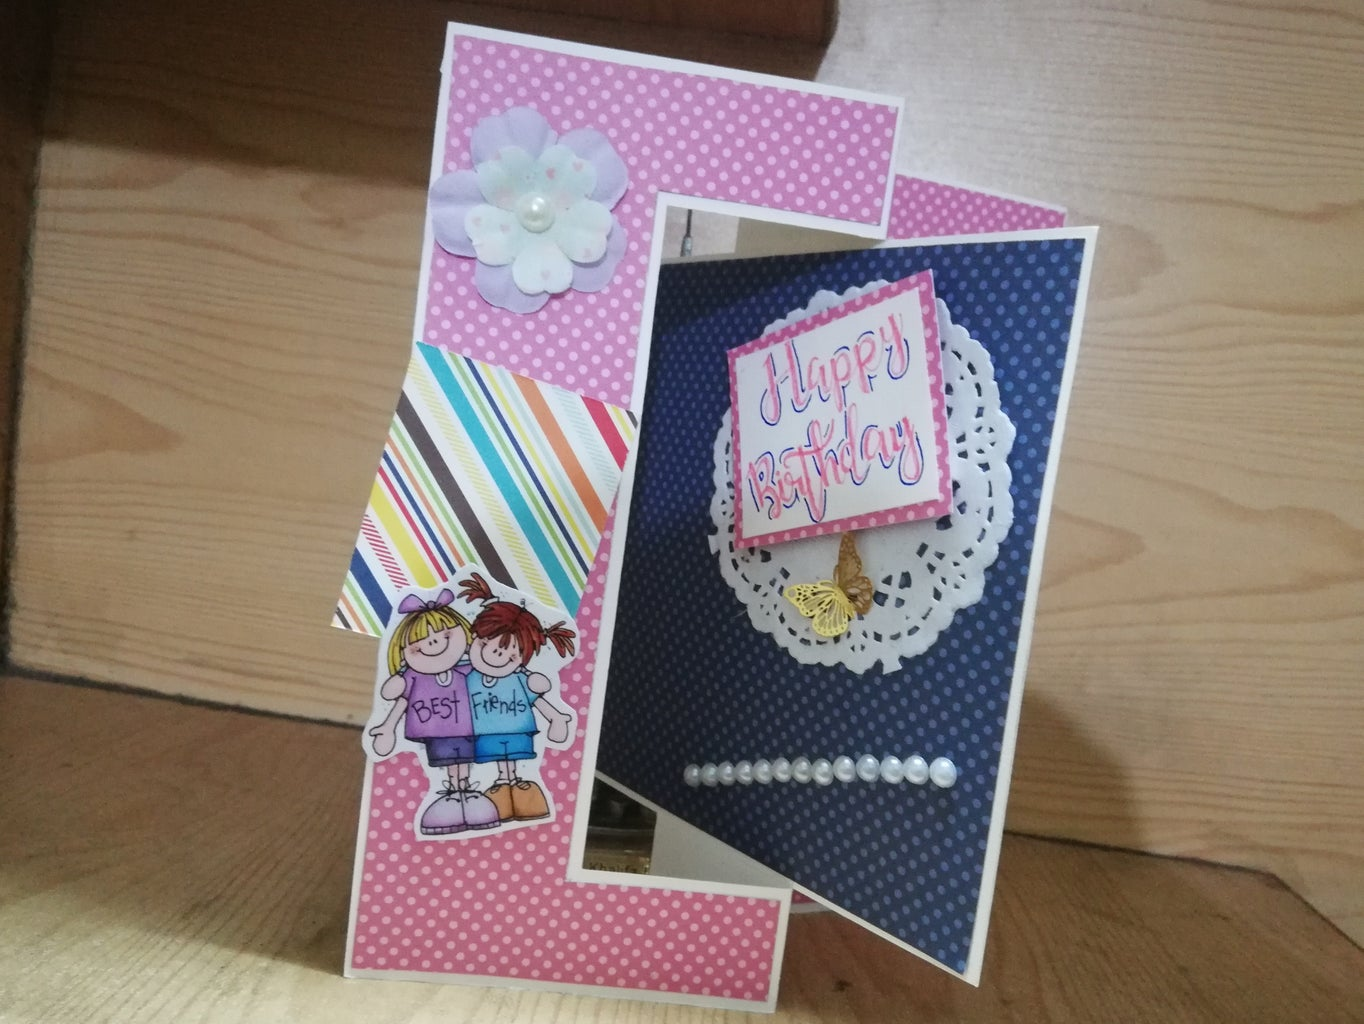 How to Make a Swing Greeting Card